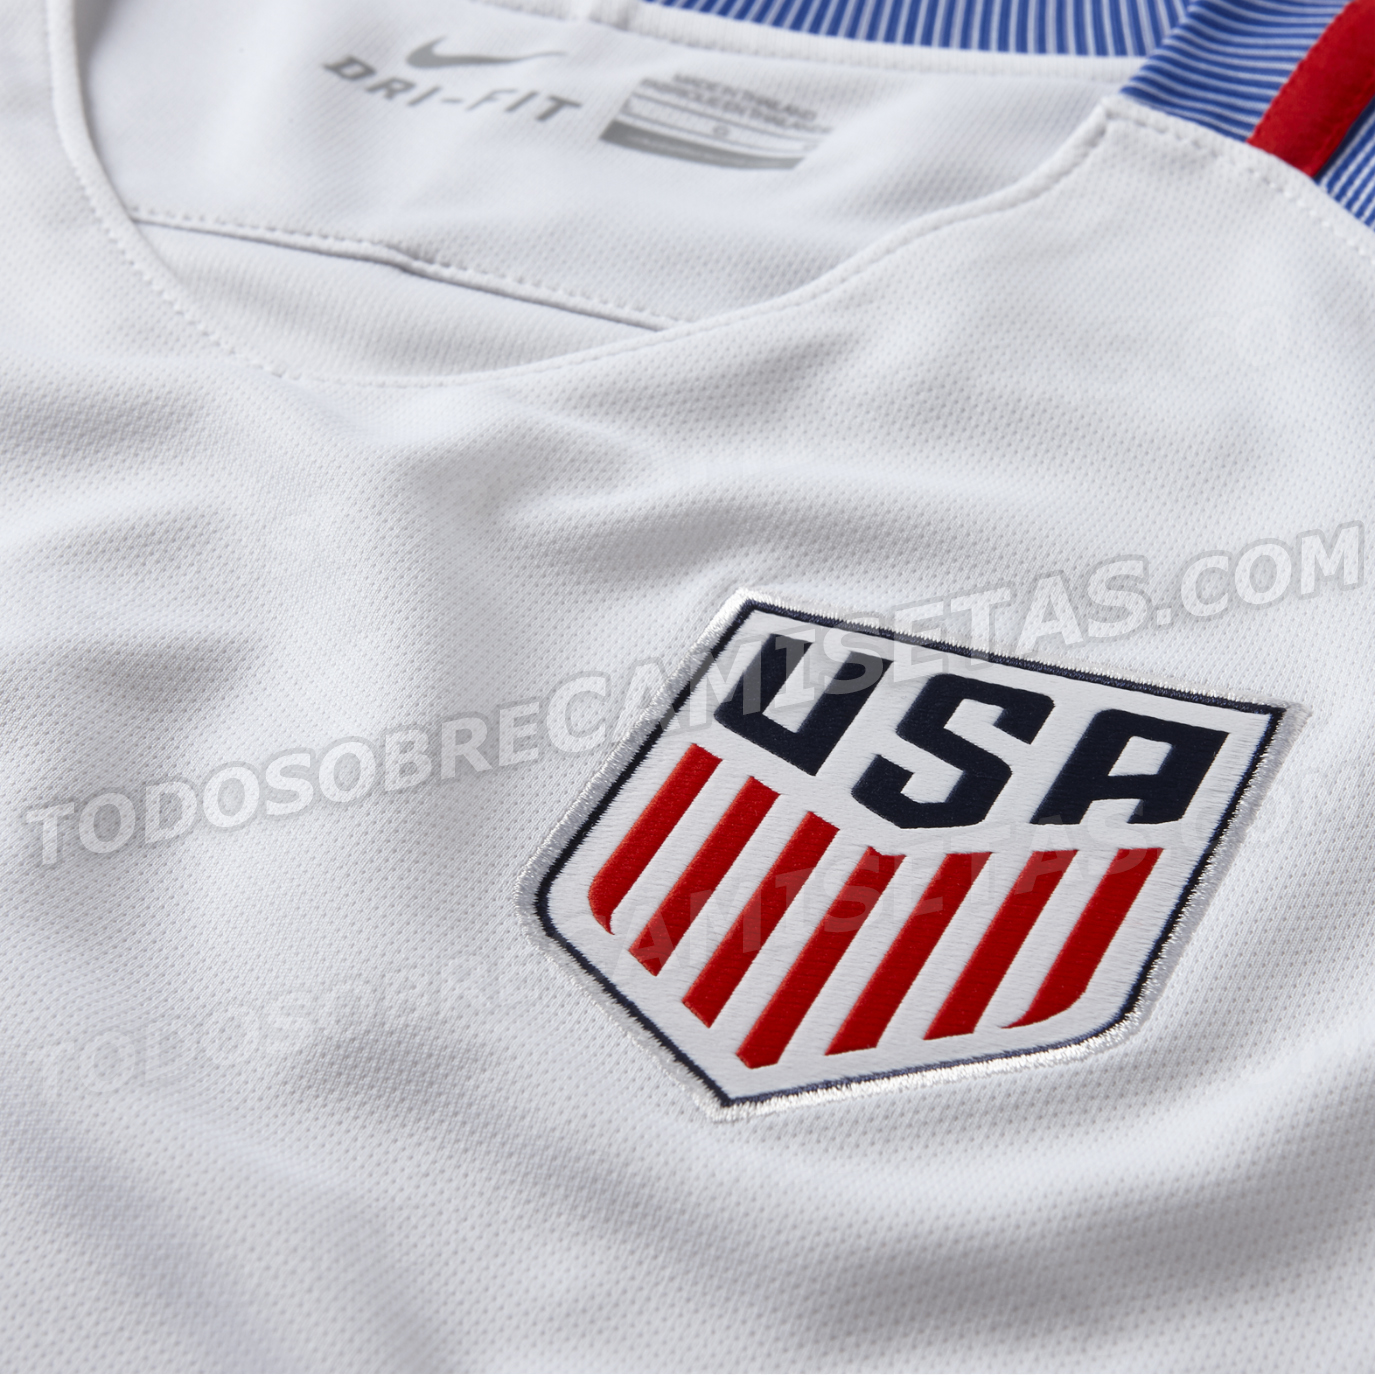 c95c912b141 New photos of USA s 2016 home jersey from Nike leaked online - World ...